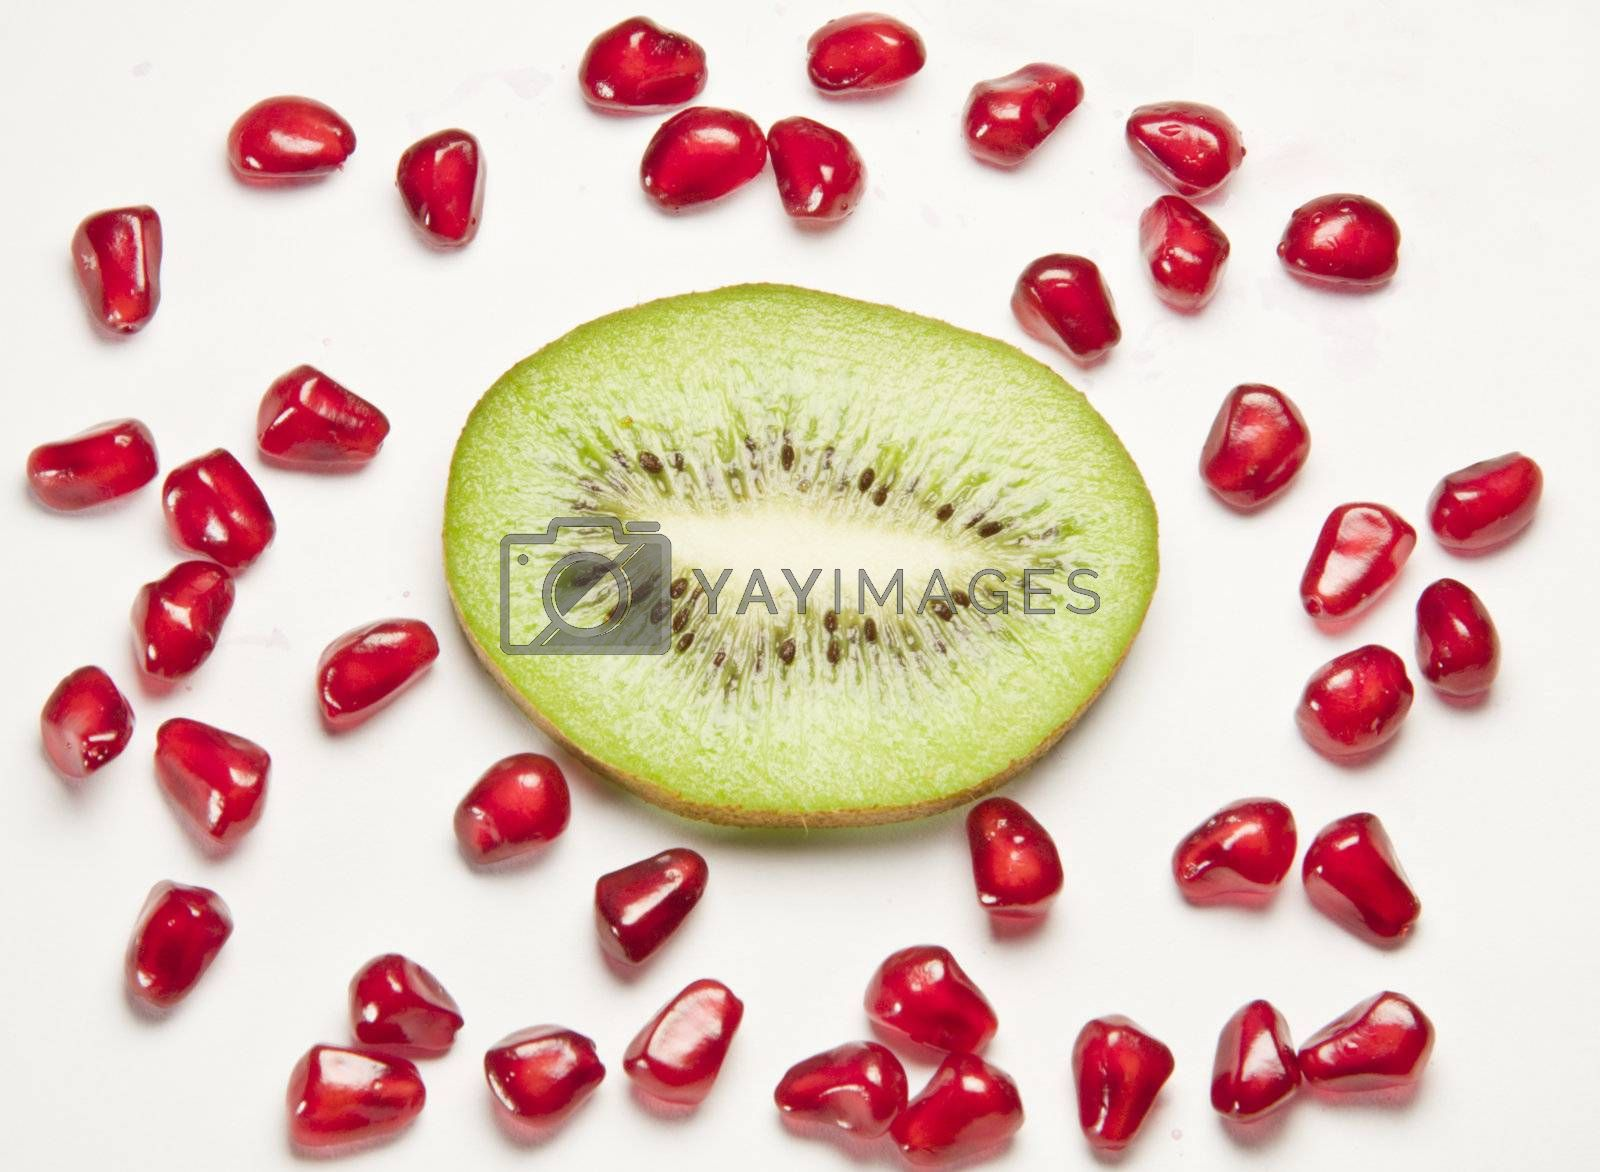 kiwi and pomegranate grains on white background